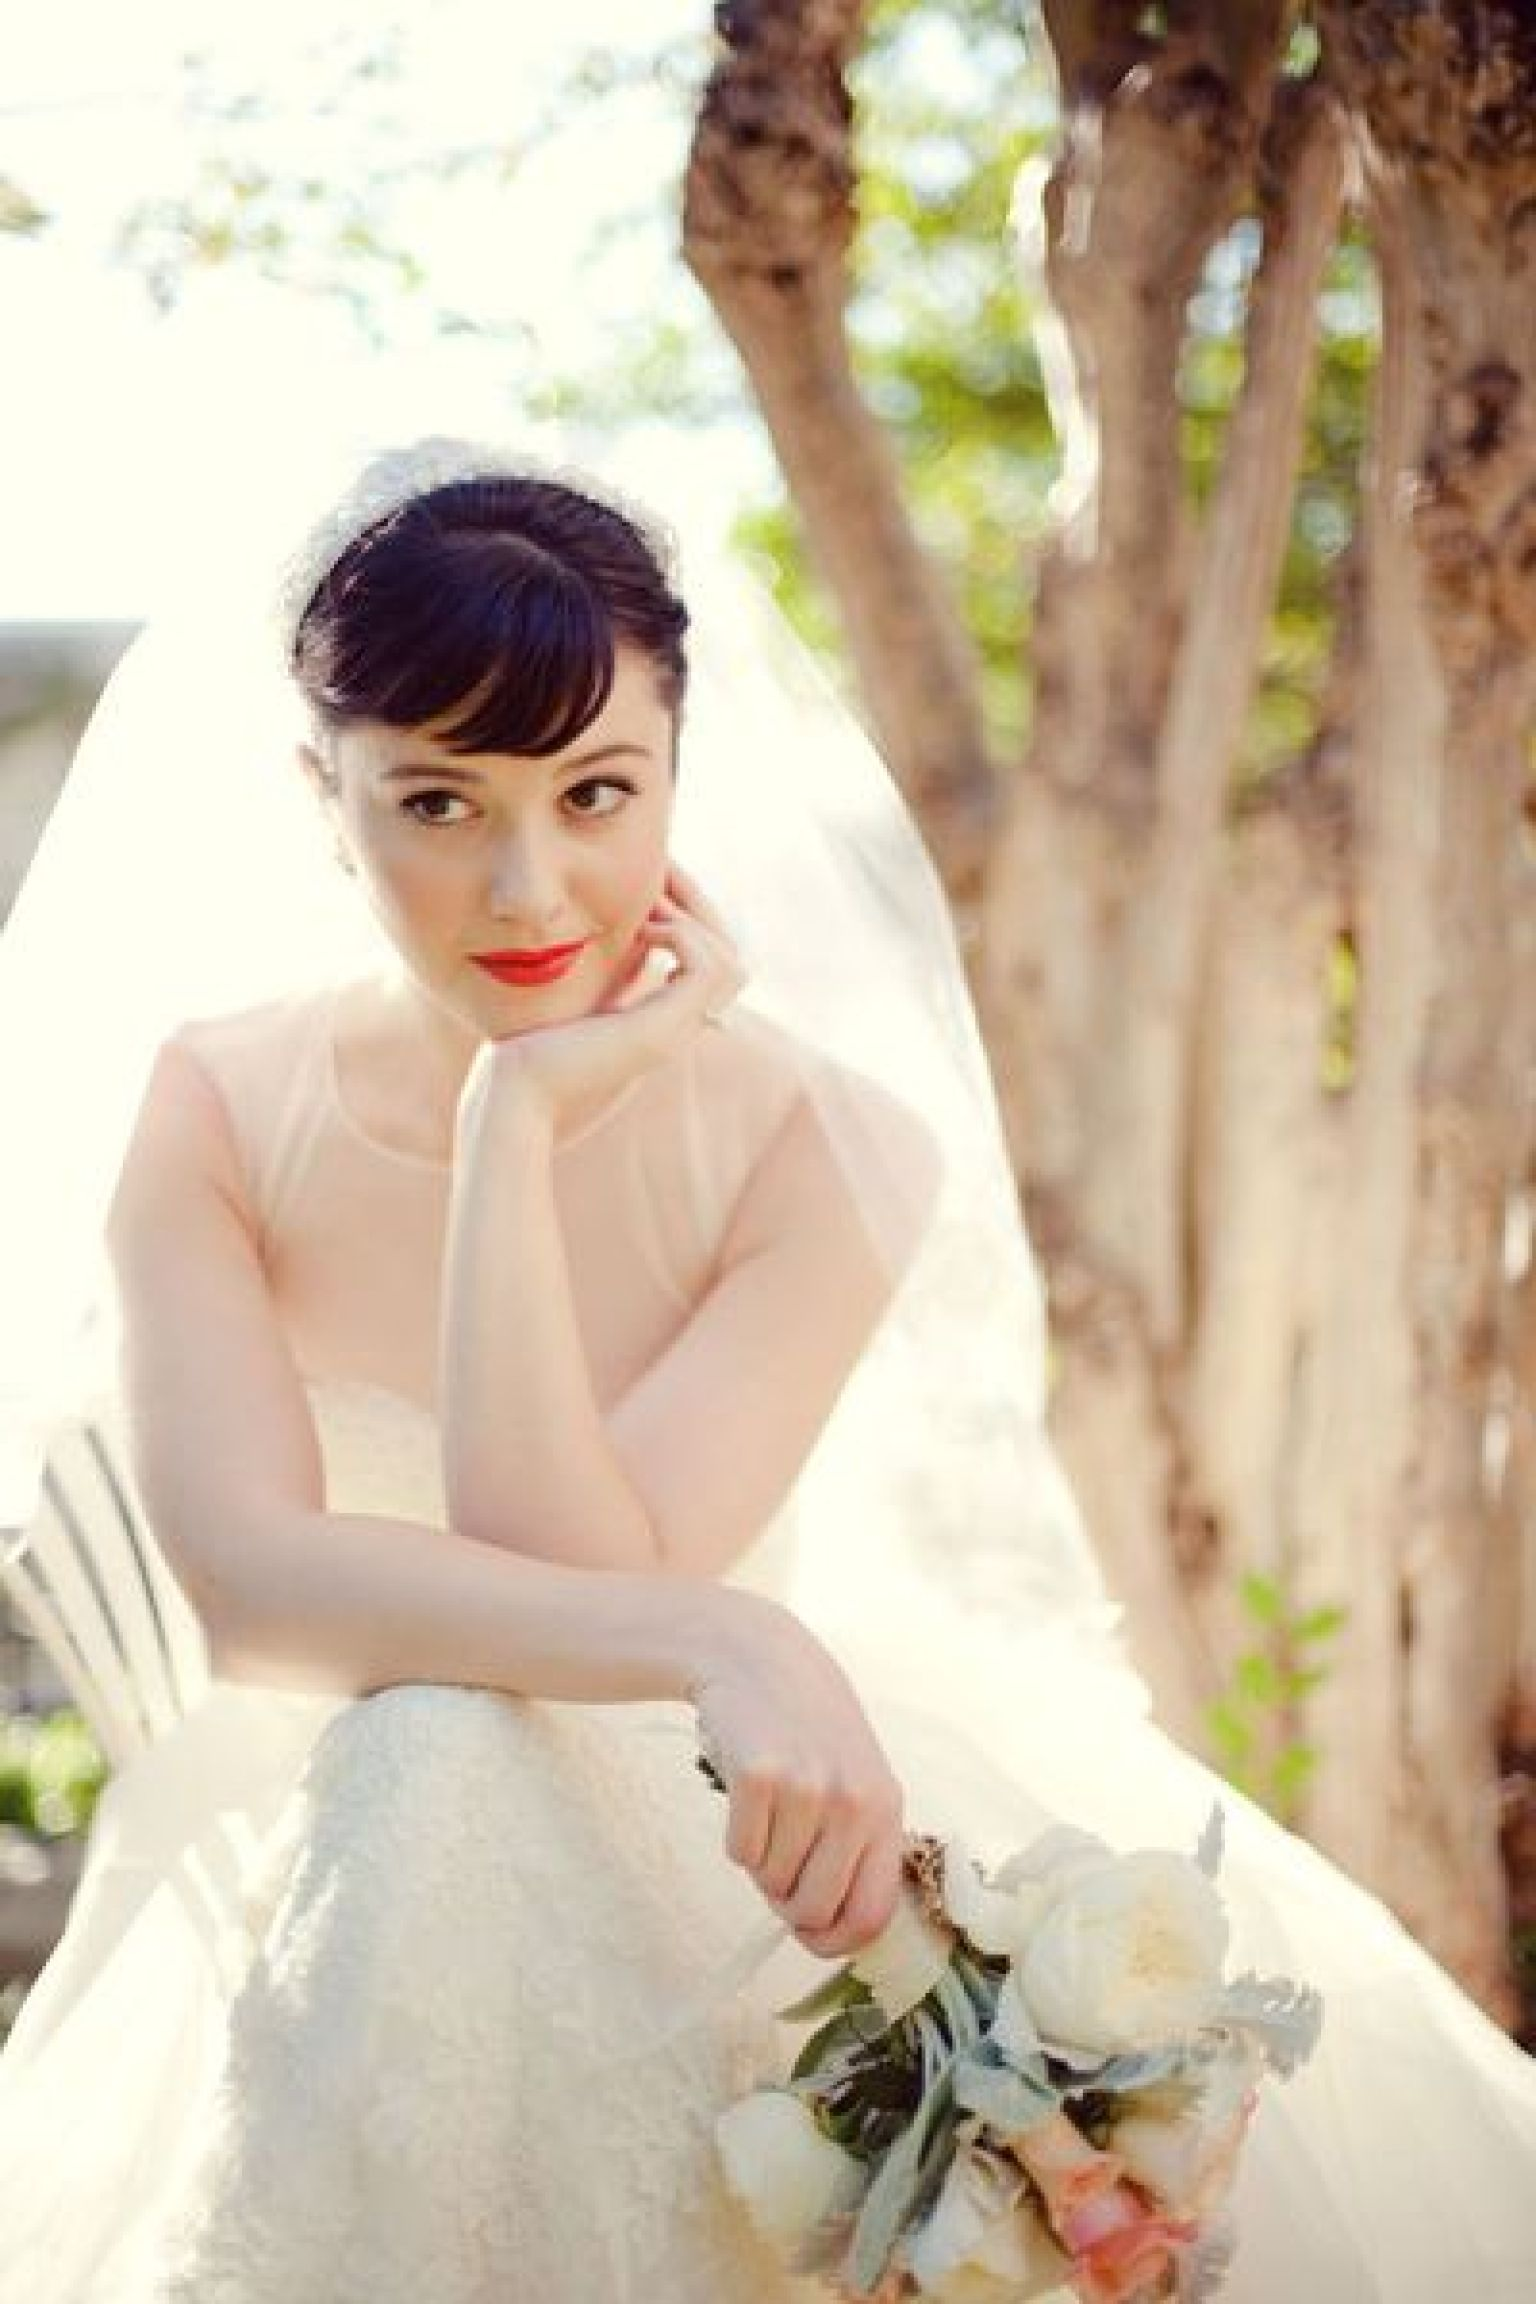 Classic Wedding Hair And Makeup : Vintage Makeup Looks For Modern Brides (PHOTOS)